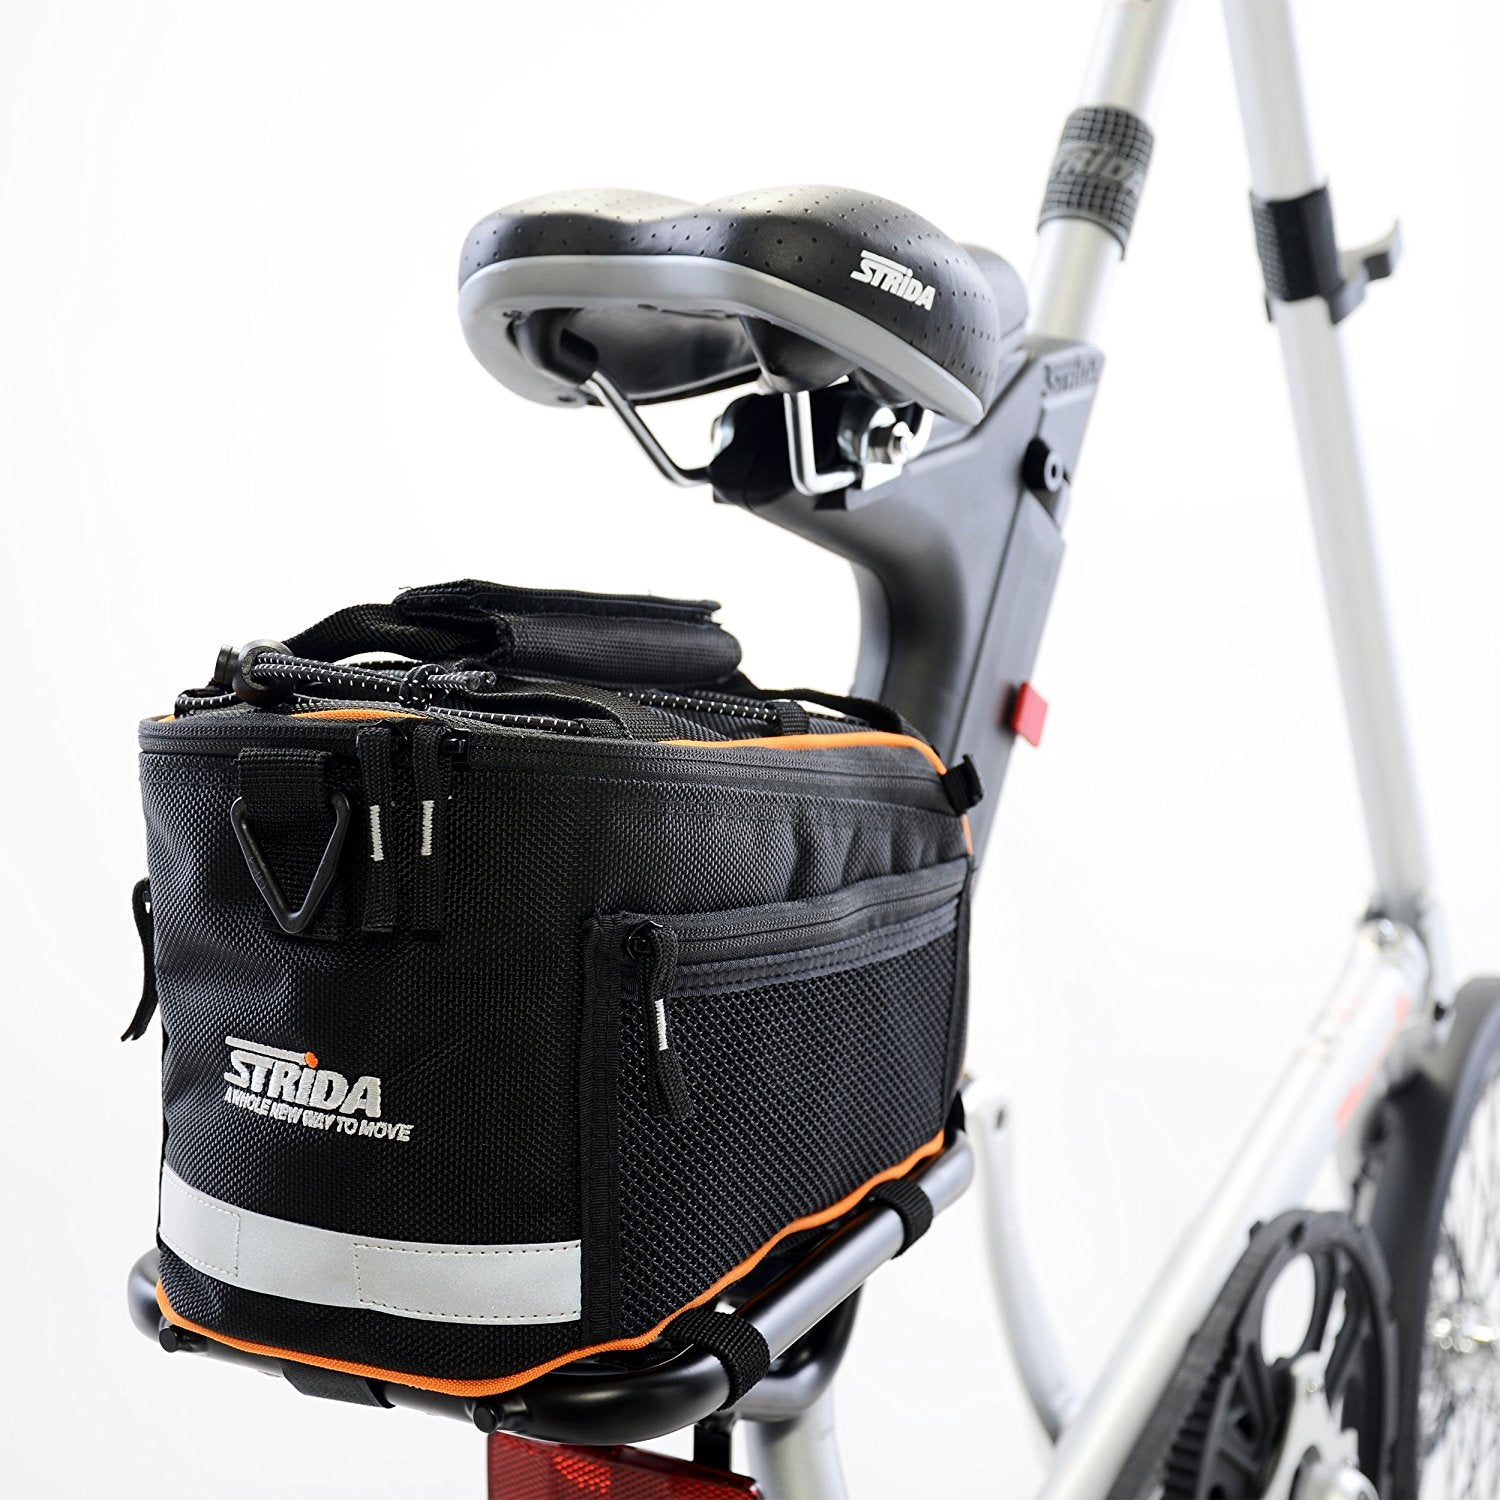 STRiDA Rear Top Bag